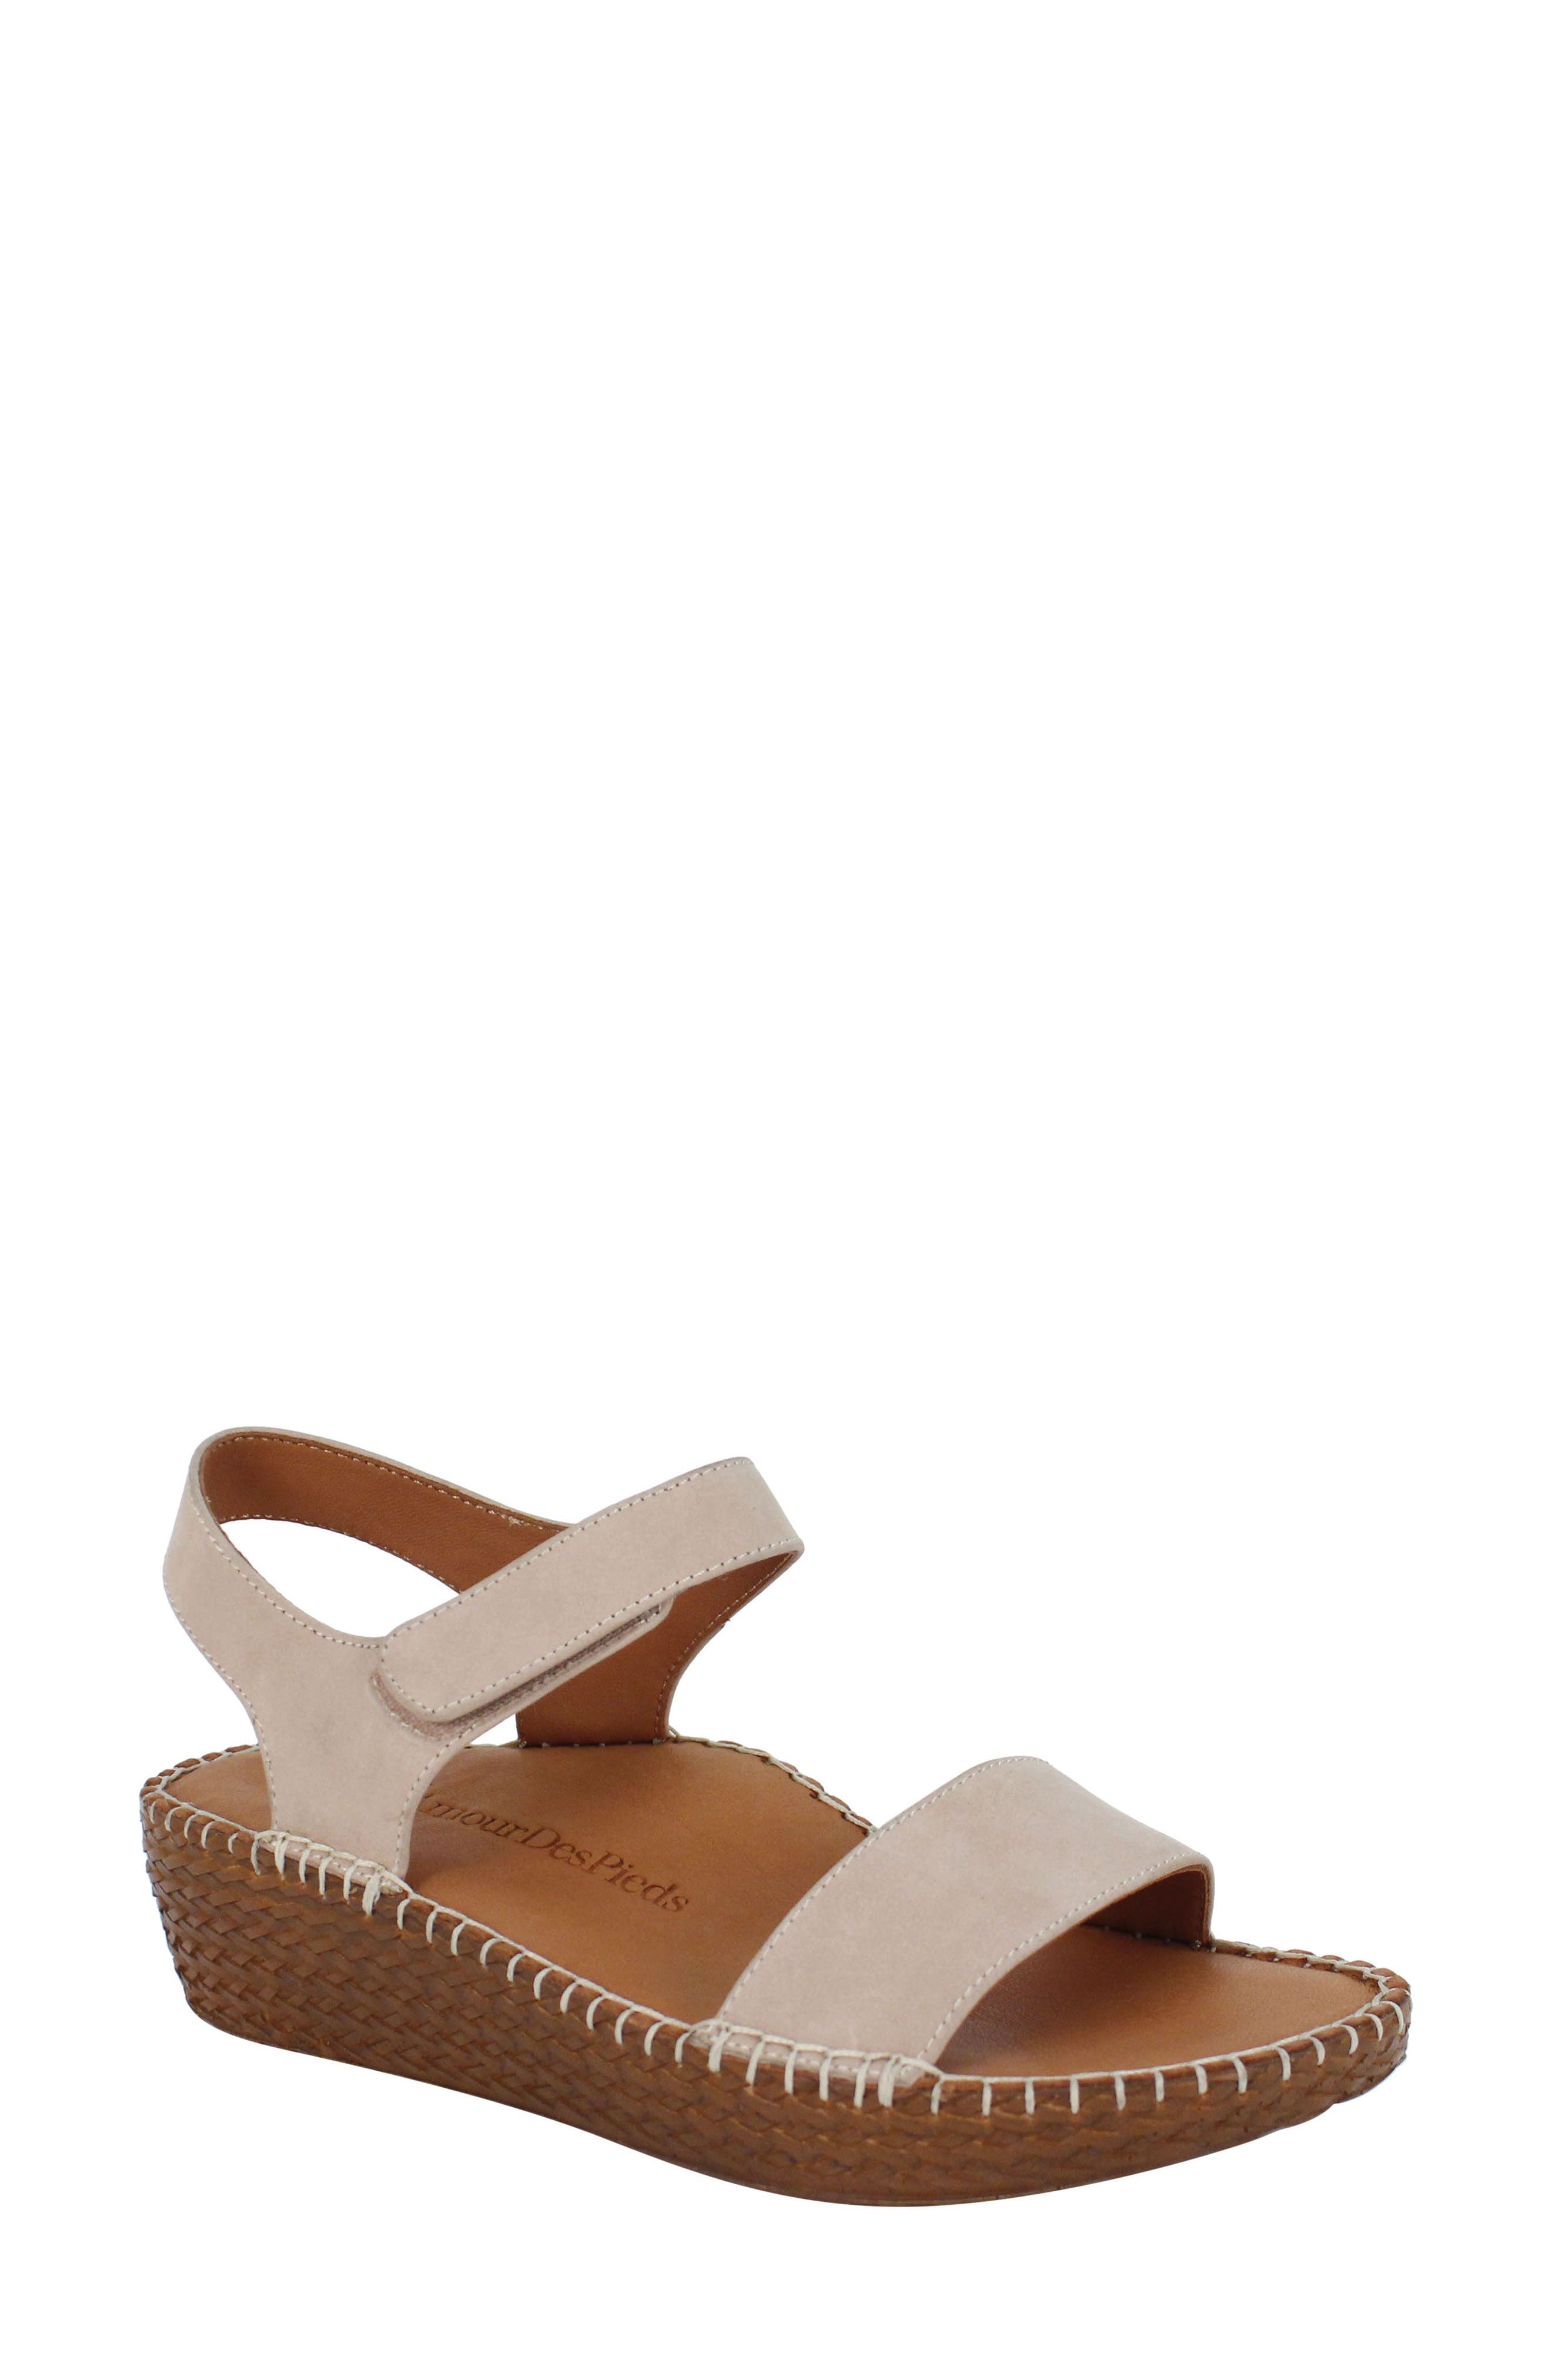 A richly textured wedge heightens the summery appeal of a breezy platform sandal featuring whipstitched trim and a well-cushioned footbed for endless comfort. Style Name:L\\\'Amour Des Pieds Yanis Sandal (Women). Style Number: 6048350. Available in stores.